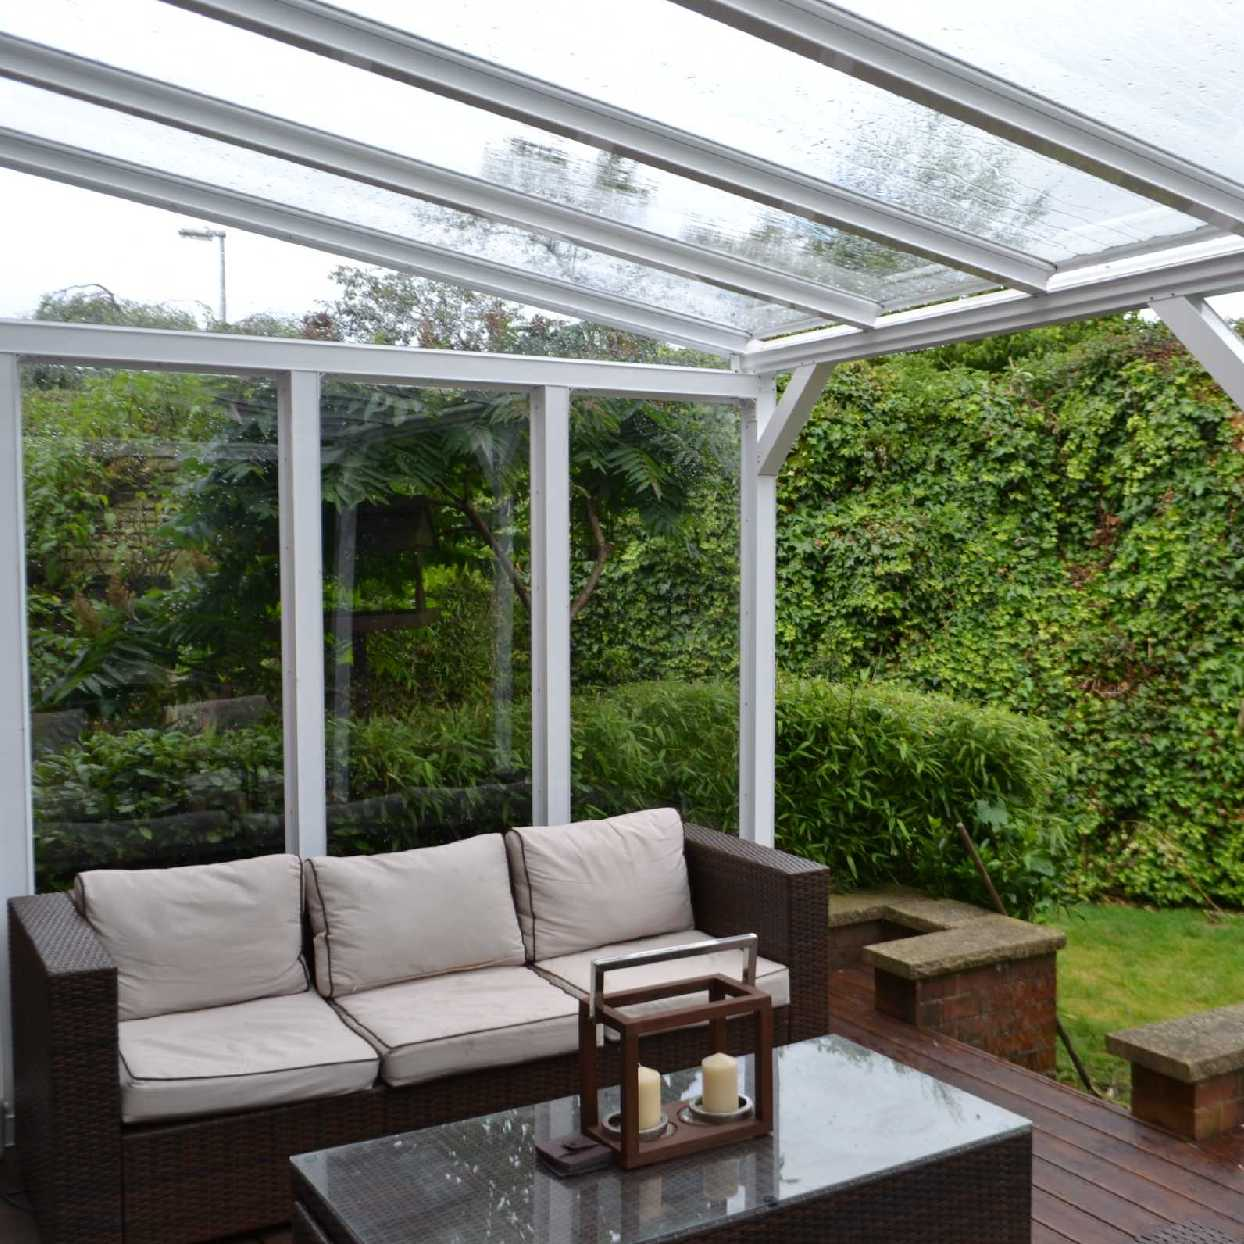 Omega Smart Lean-To Canopy with 6mm Glass Clear Plate Polycarbonate Glazing - 5.6m (W) x 3.5m (P), (3) Supporting Posts